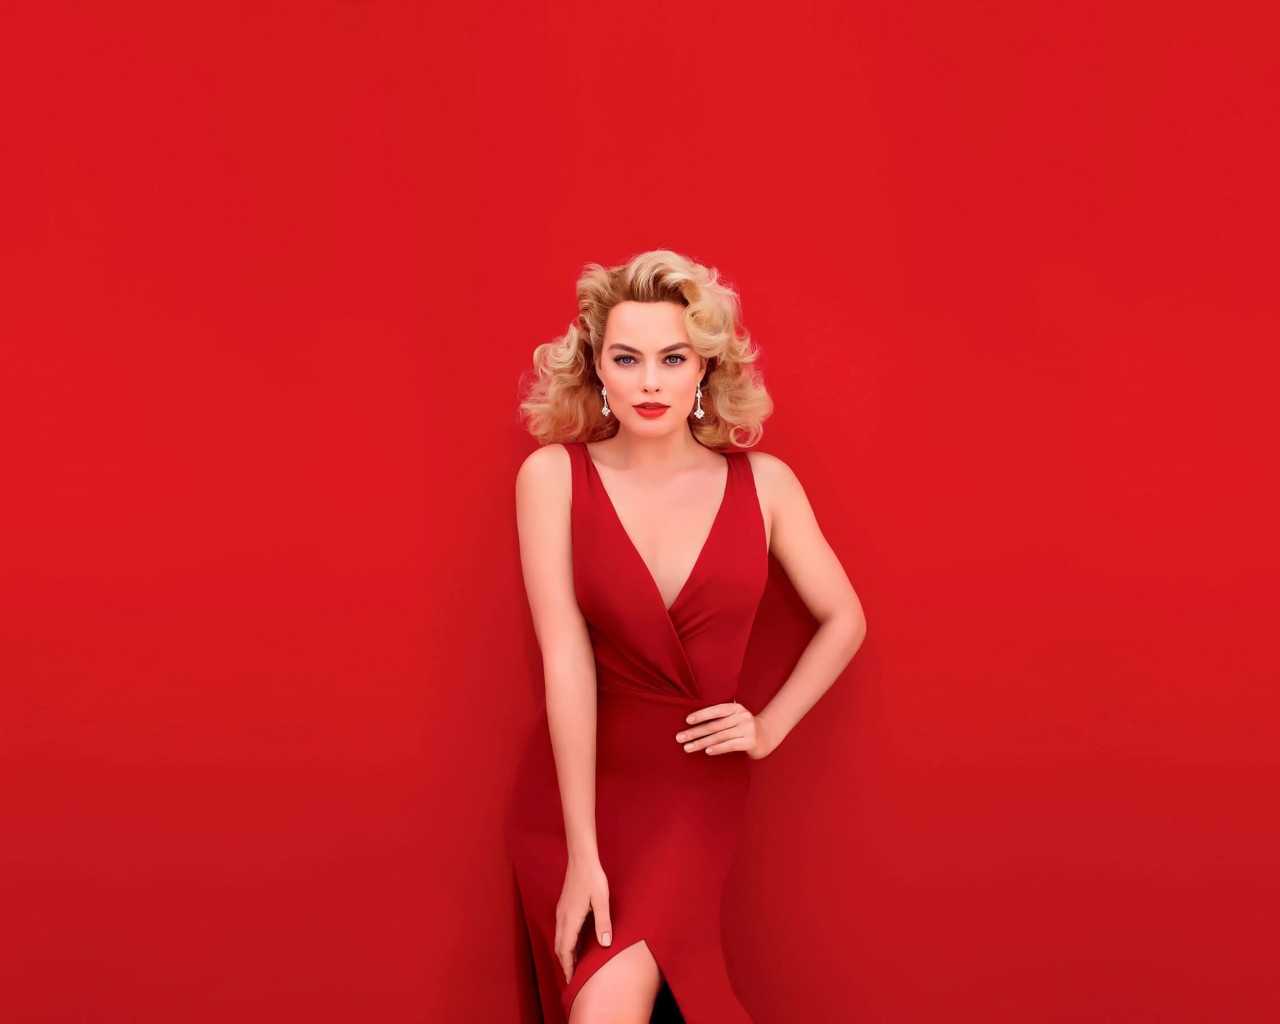 Margot Robbie In Red Wallpaper for Desktop 1280x1024